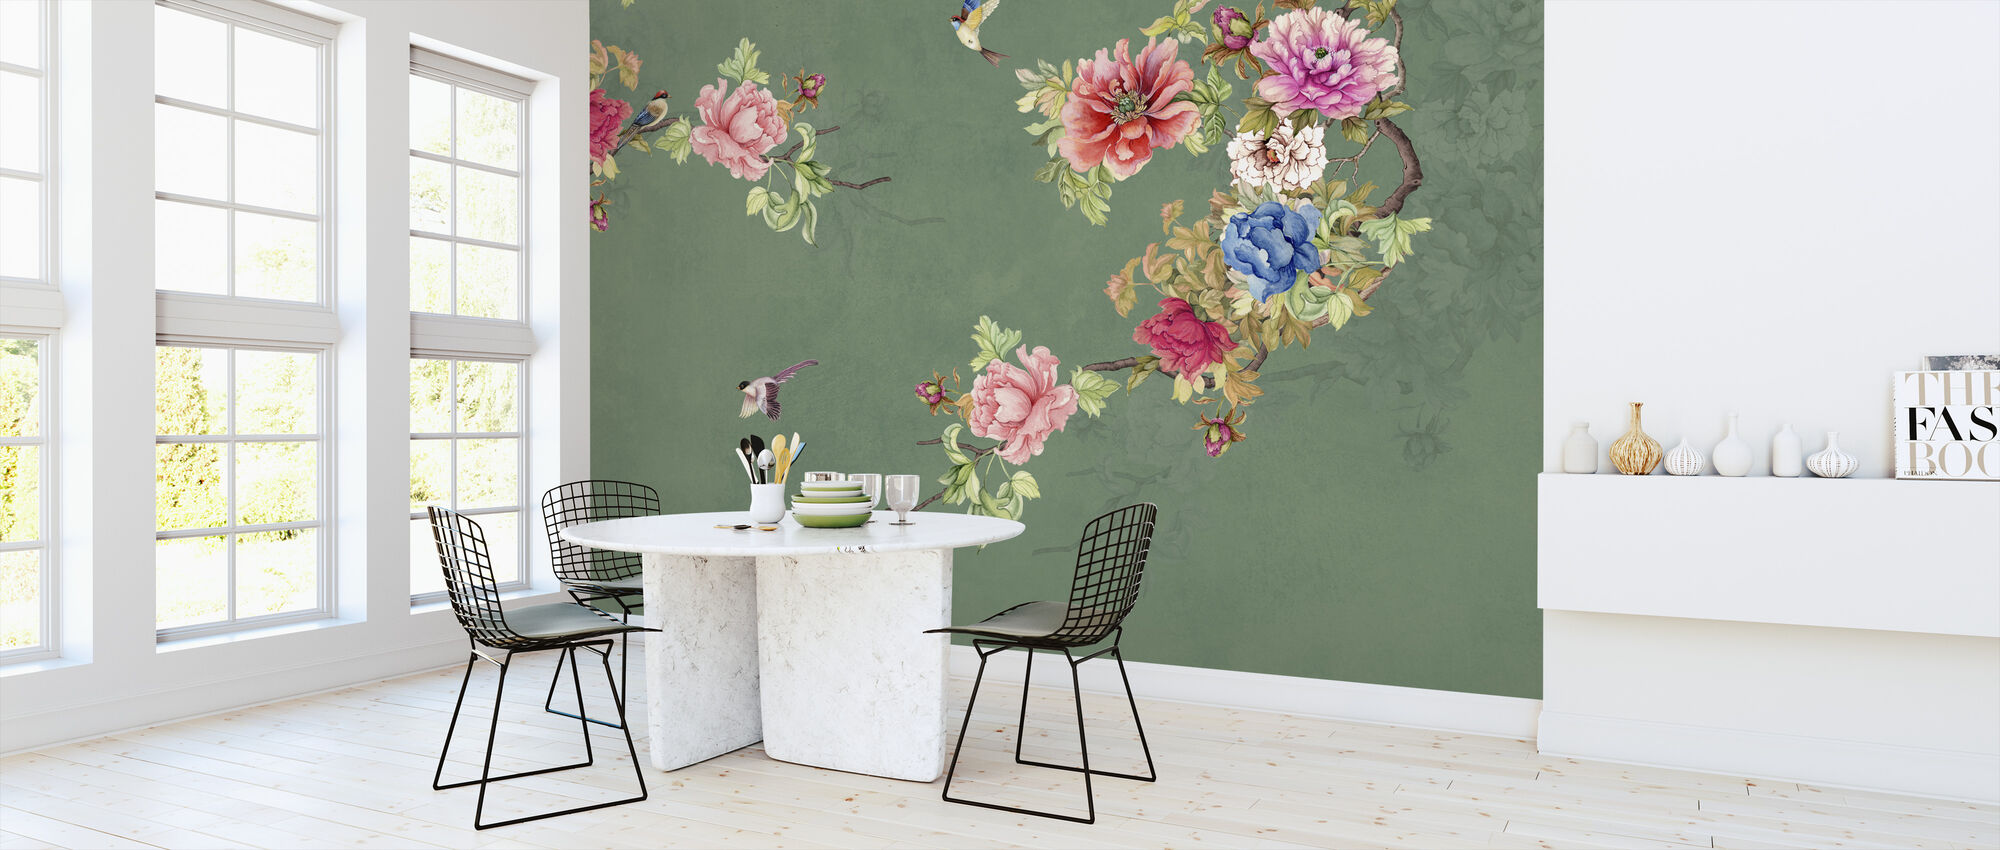 Blooming Coco - Wallpaper - Kitchen